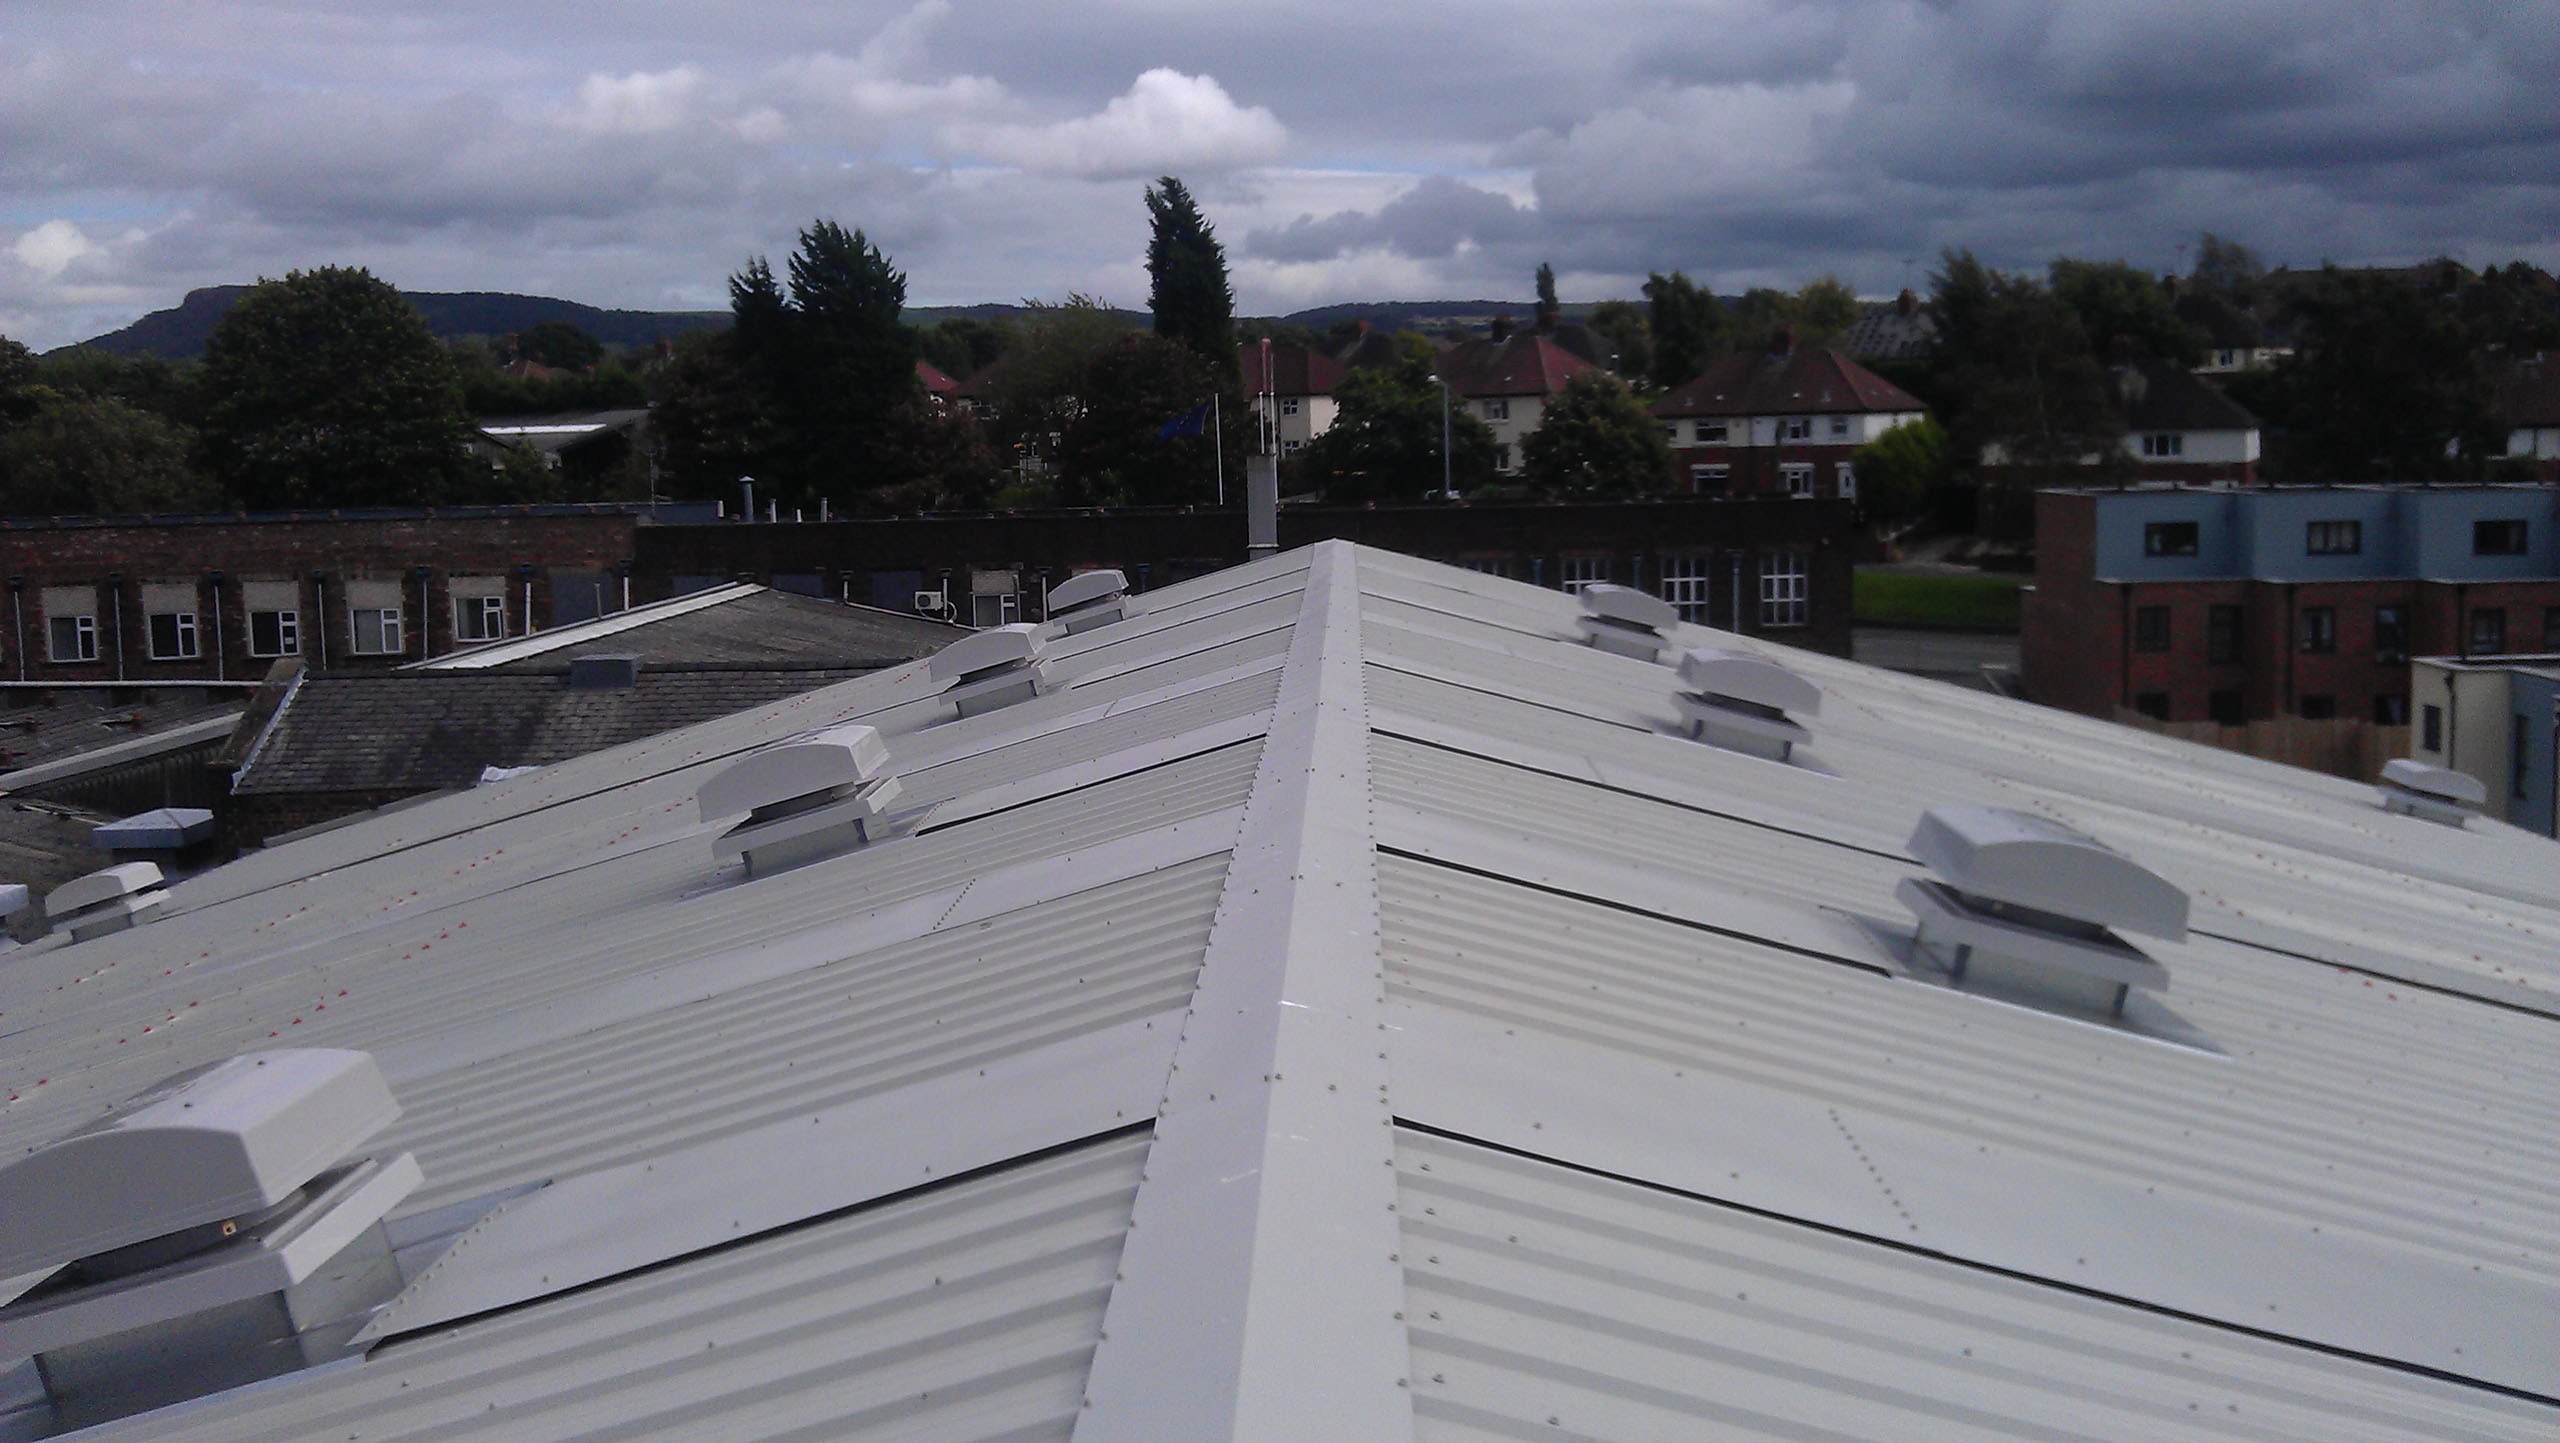 Commercial, Industrial And Agricultural Roofing